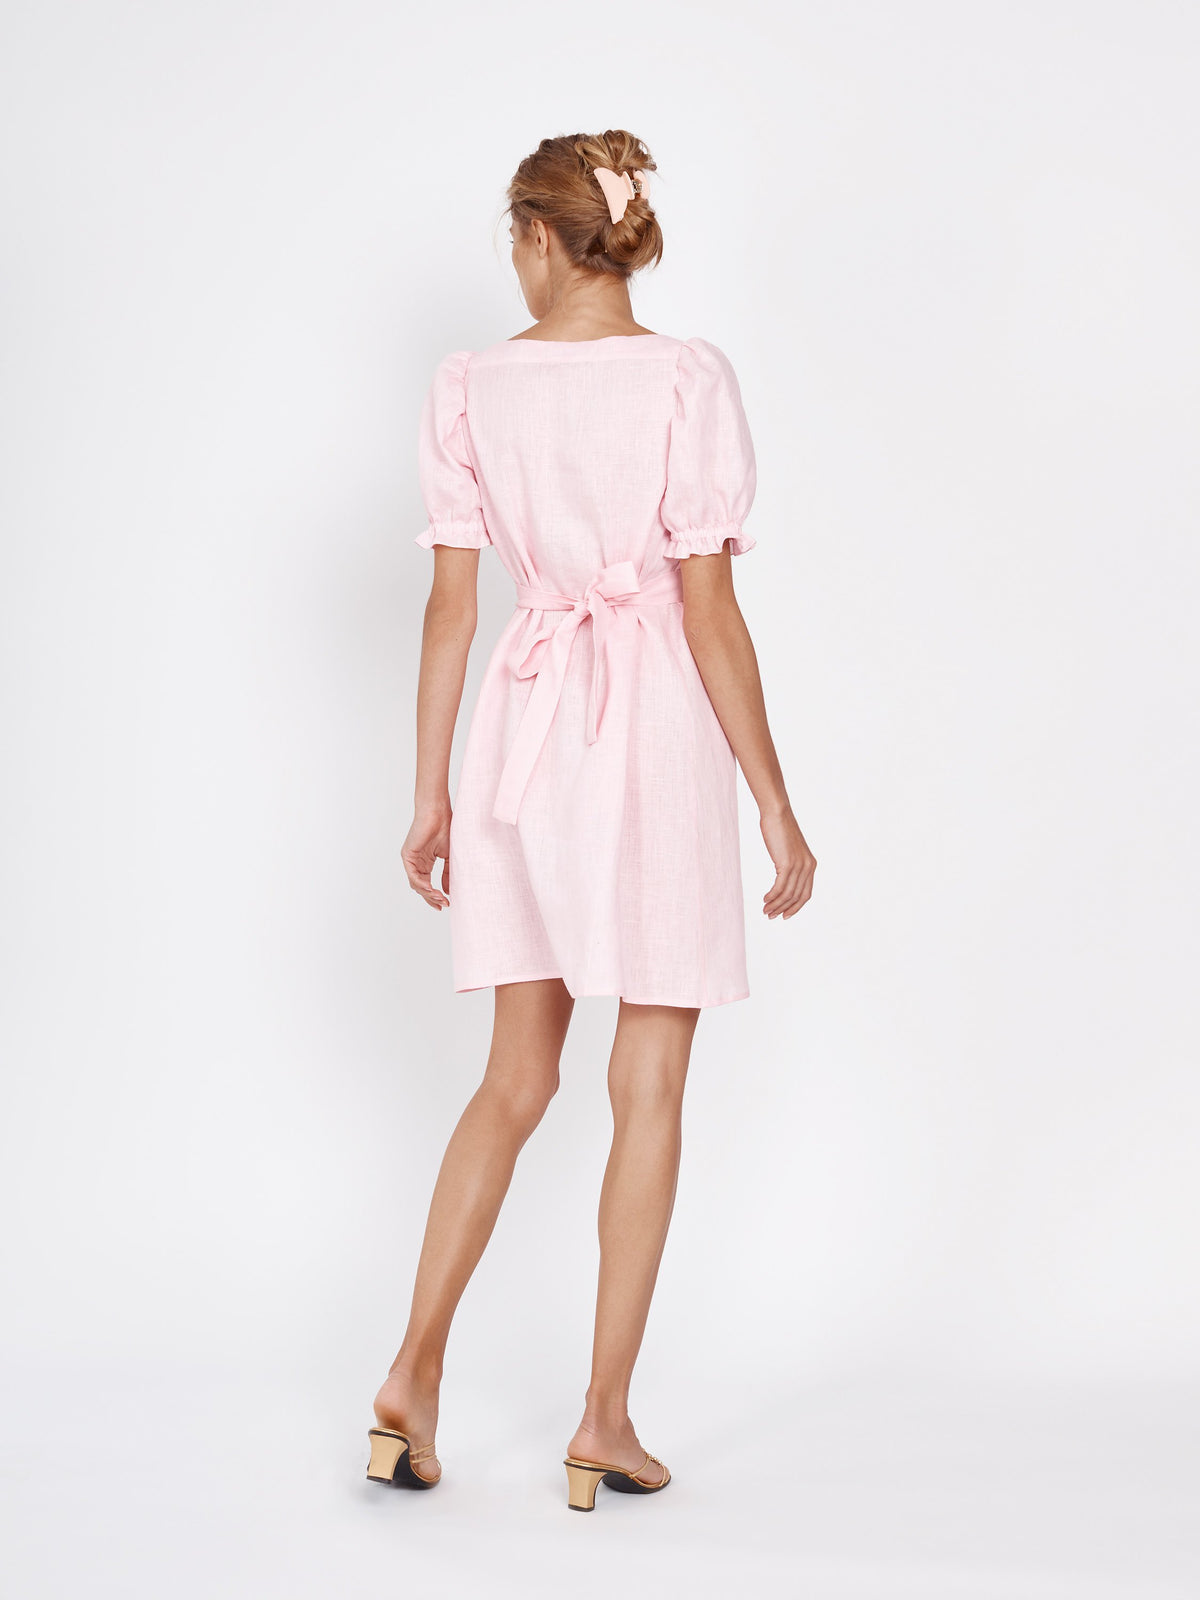 Brigitte Mini Dress in Pink